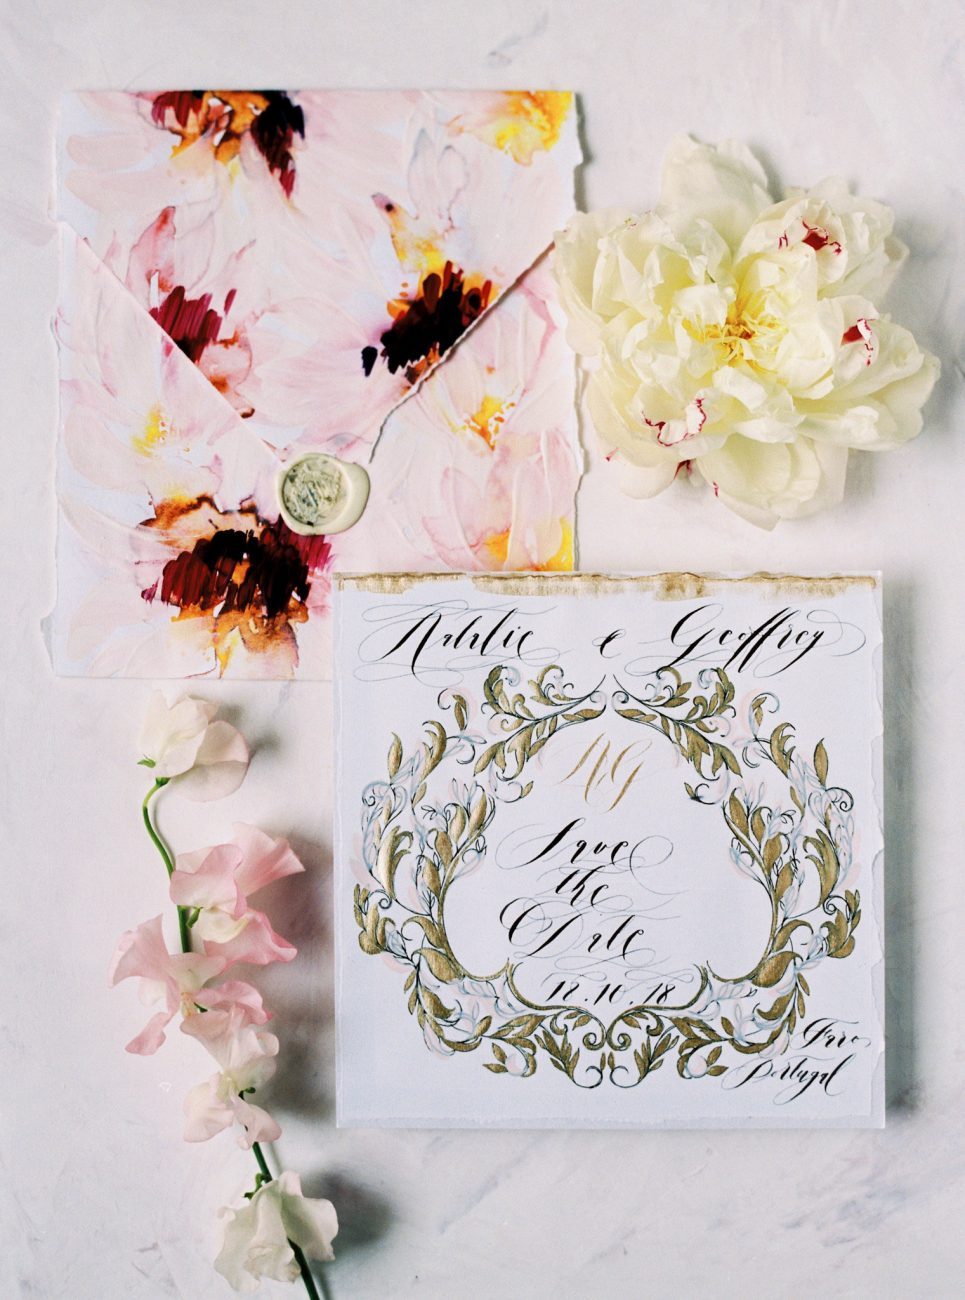 Hand painted wedding invitations suite with the save the date card and envelope